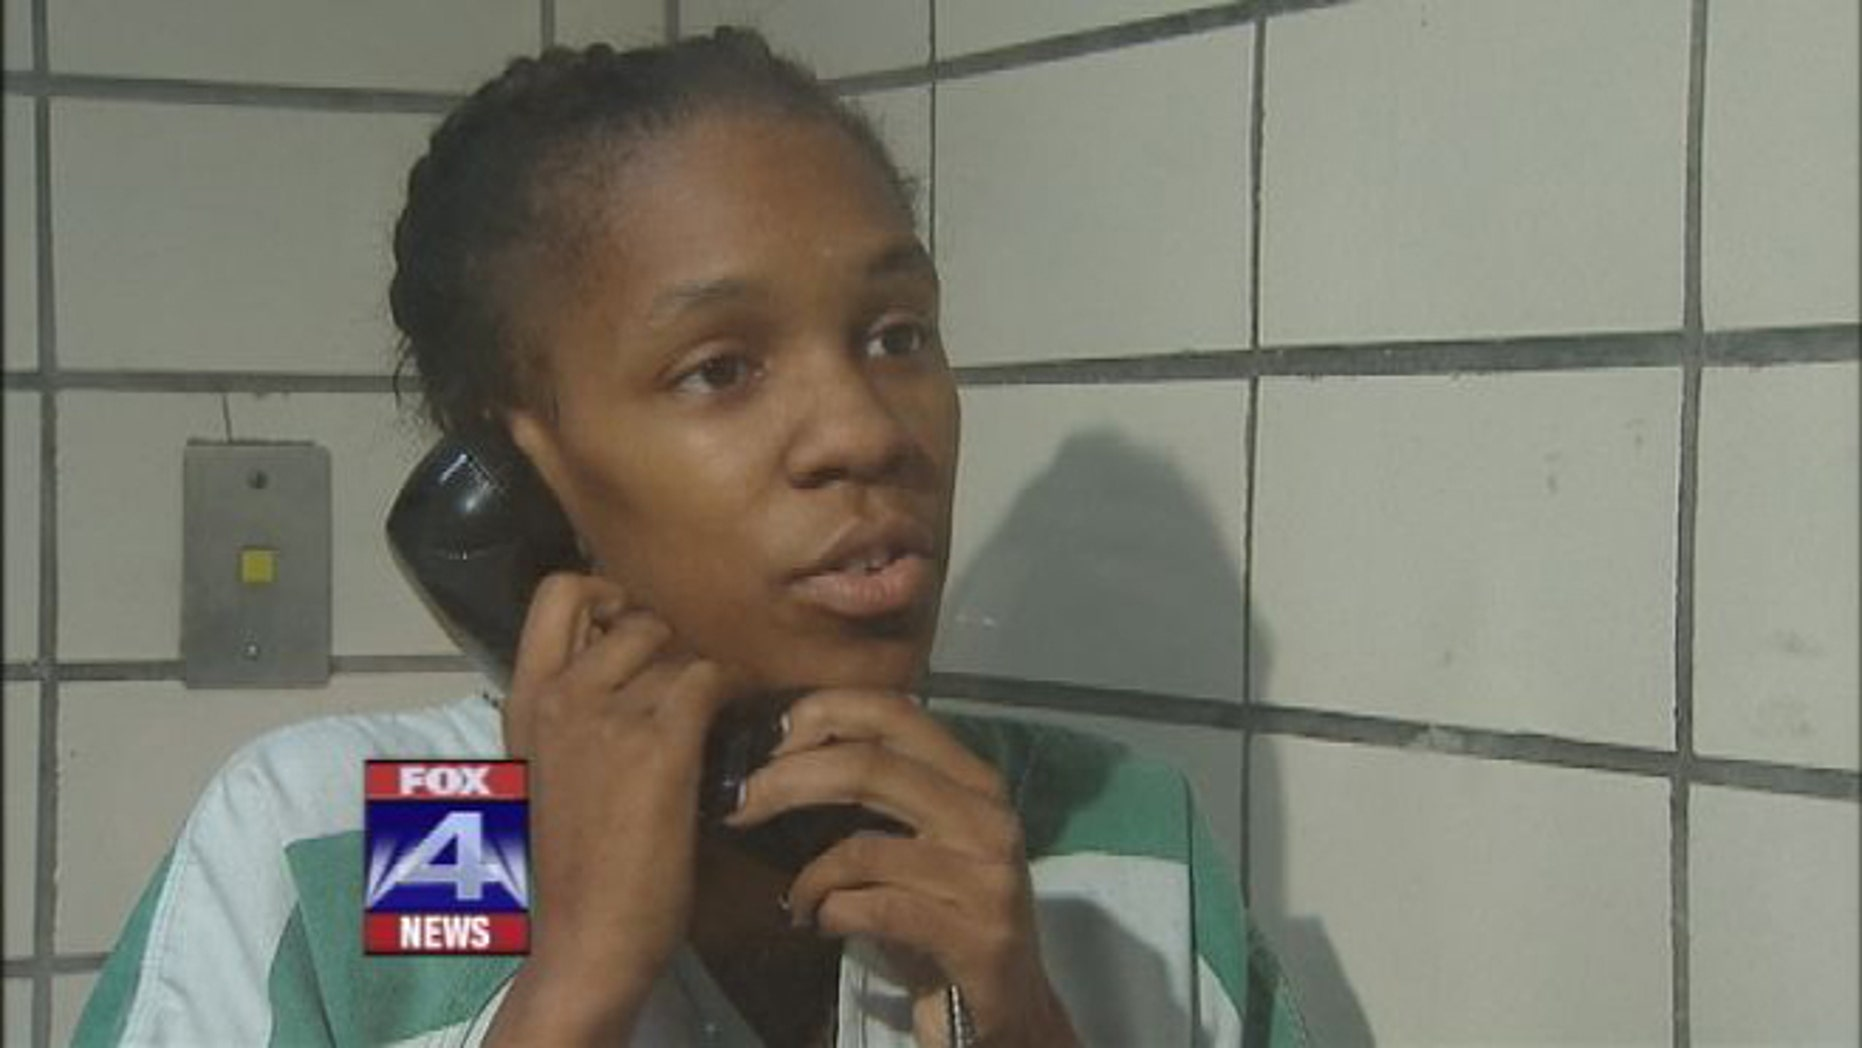 This undated photo shows Brittany Hill, accused of trying to sell her child online.